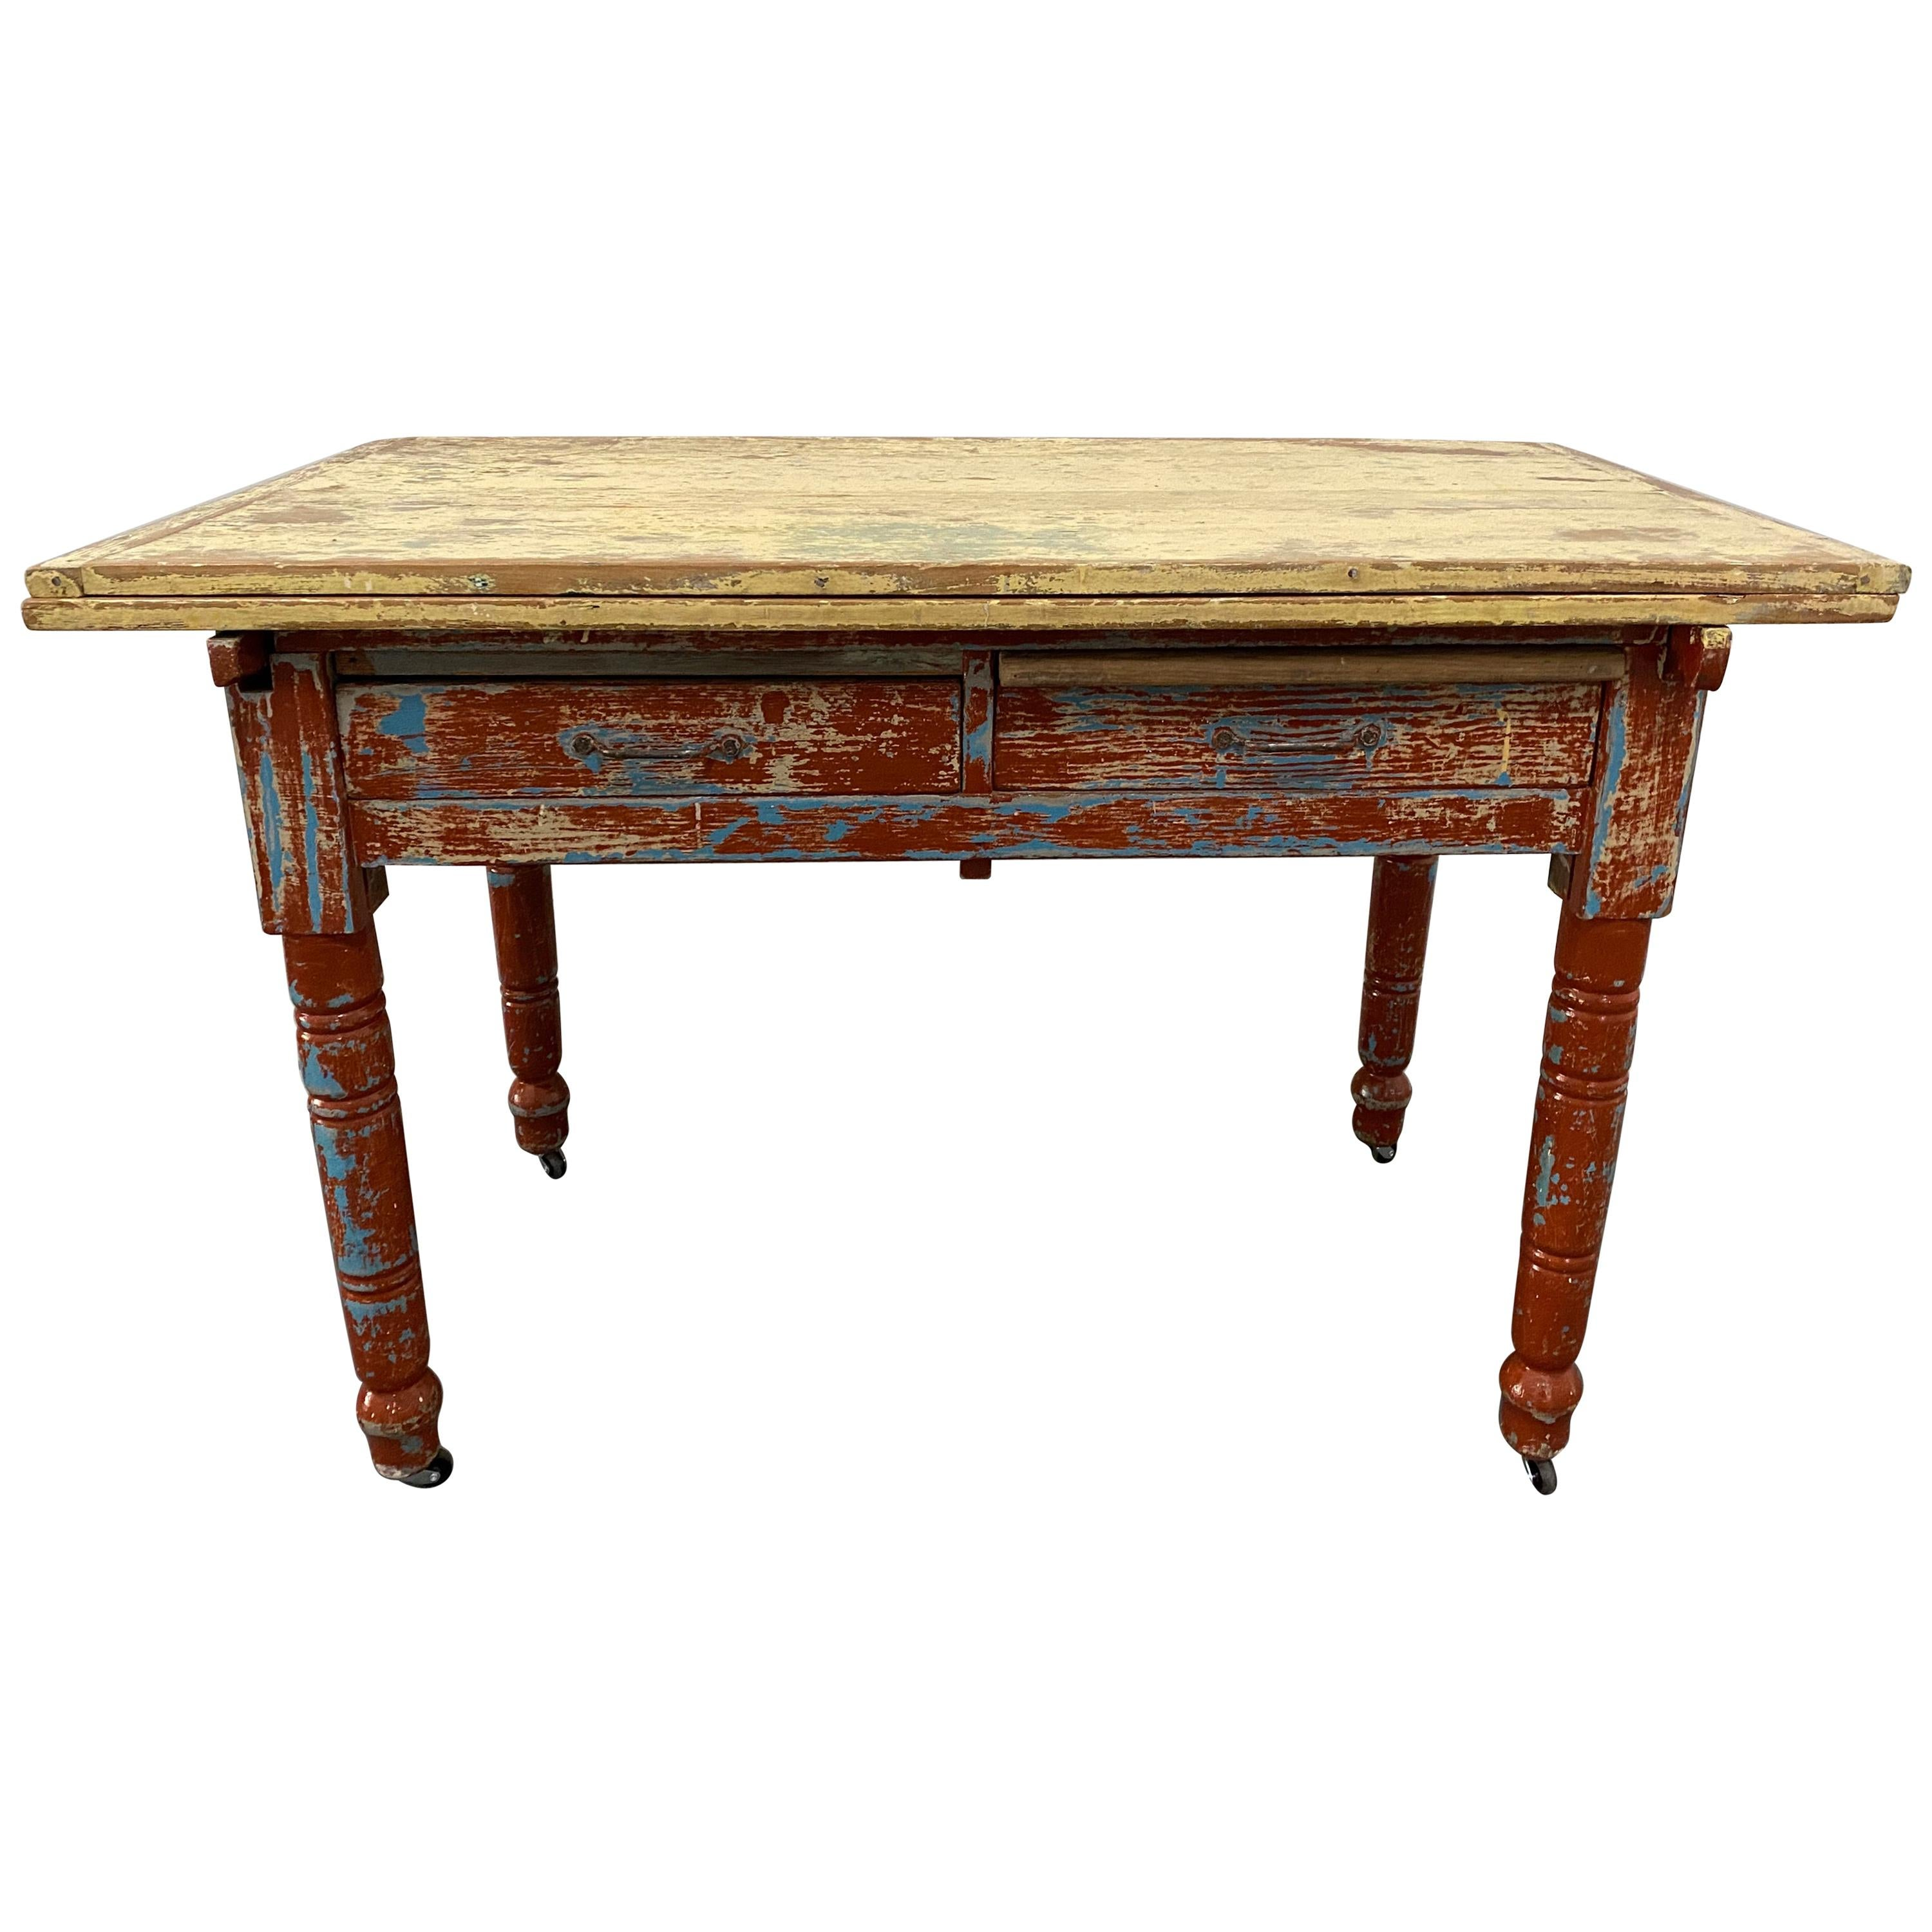 Vintage Painted Table with Two Drawers and Turned Legs, circa 1930